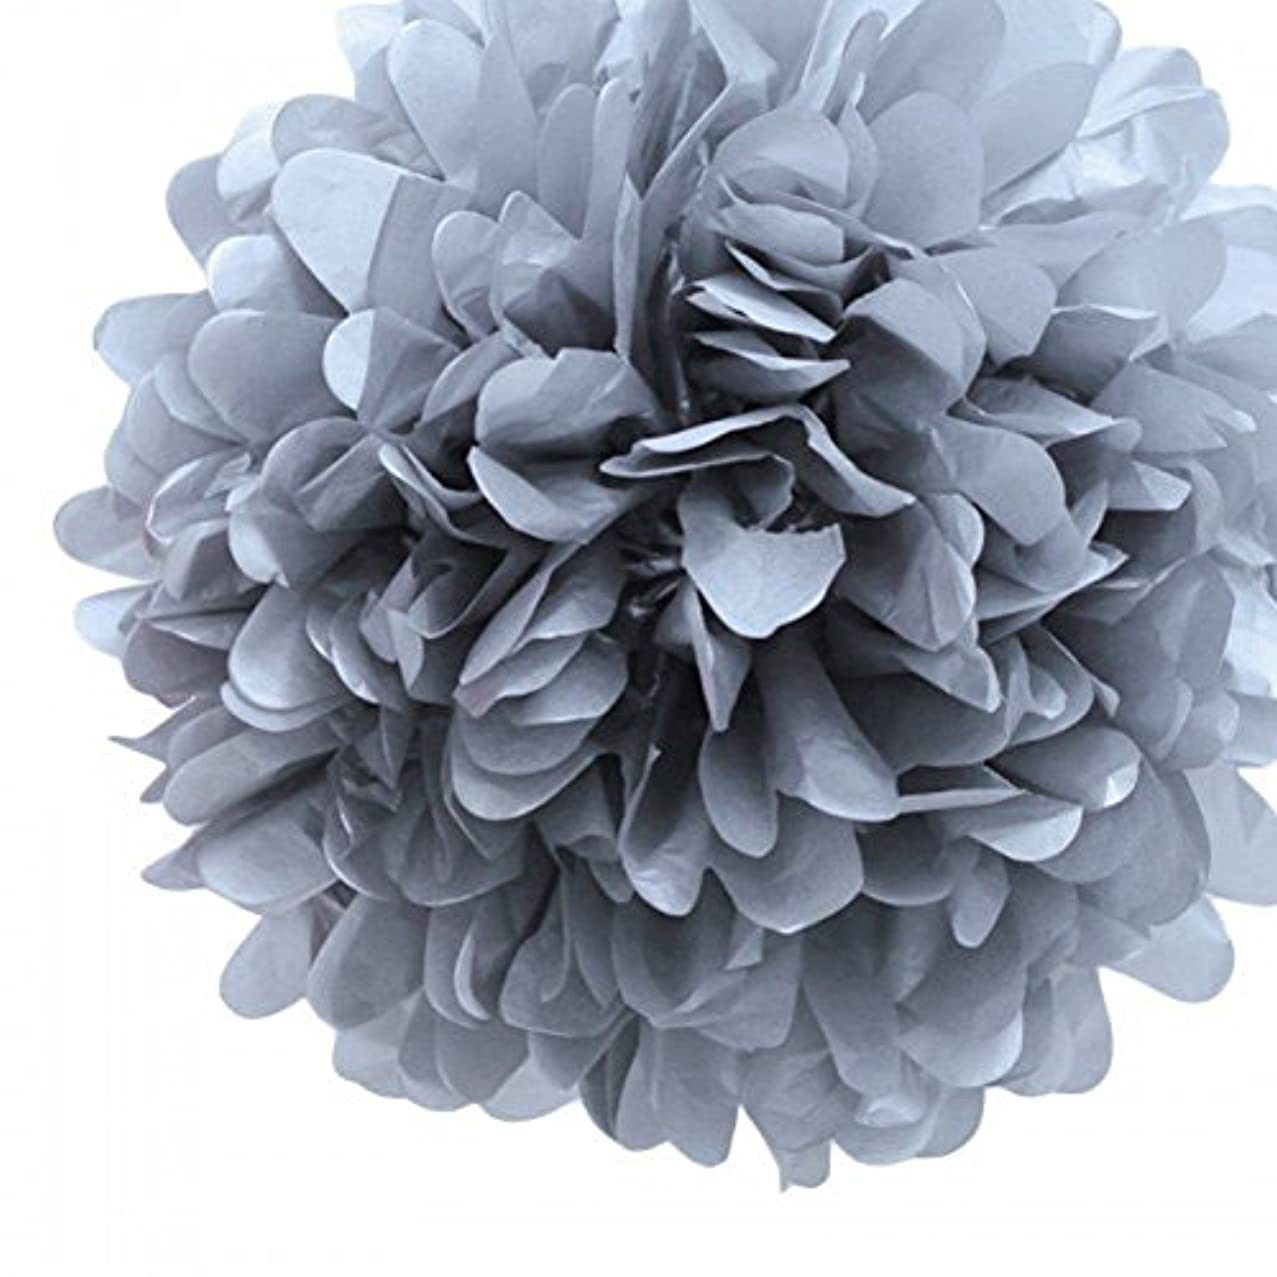 S-shine Set of 6 Tissue Paper Pom-poms Flower Ball Wedding Party Outdoor Decoration Tissue Paper Flowers Kit Pom Poms Craft (16 inch, Silver Grey)